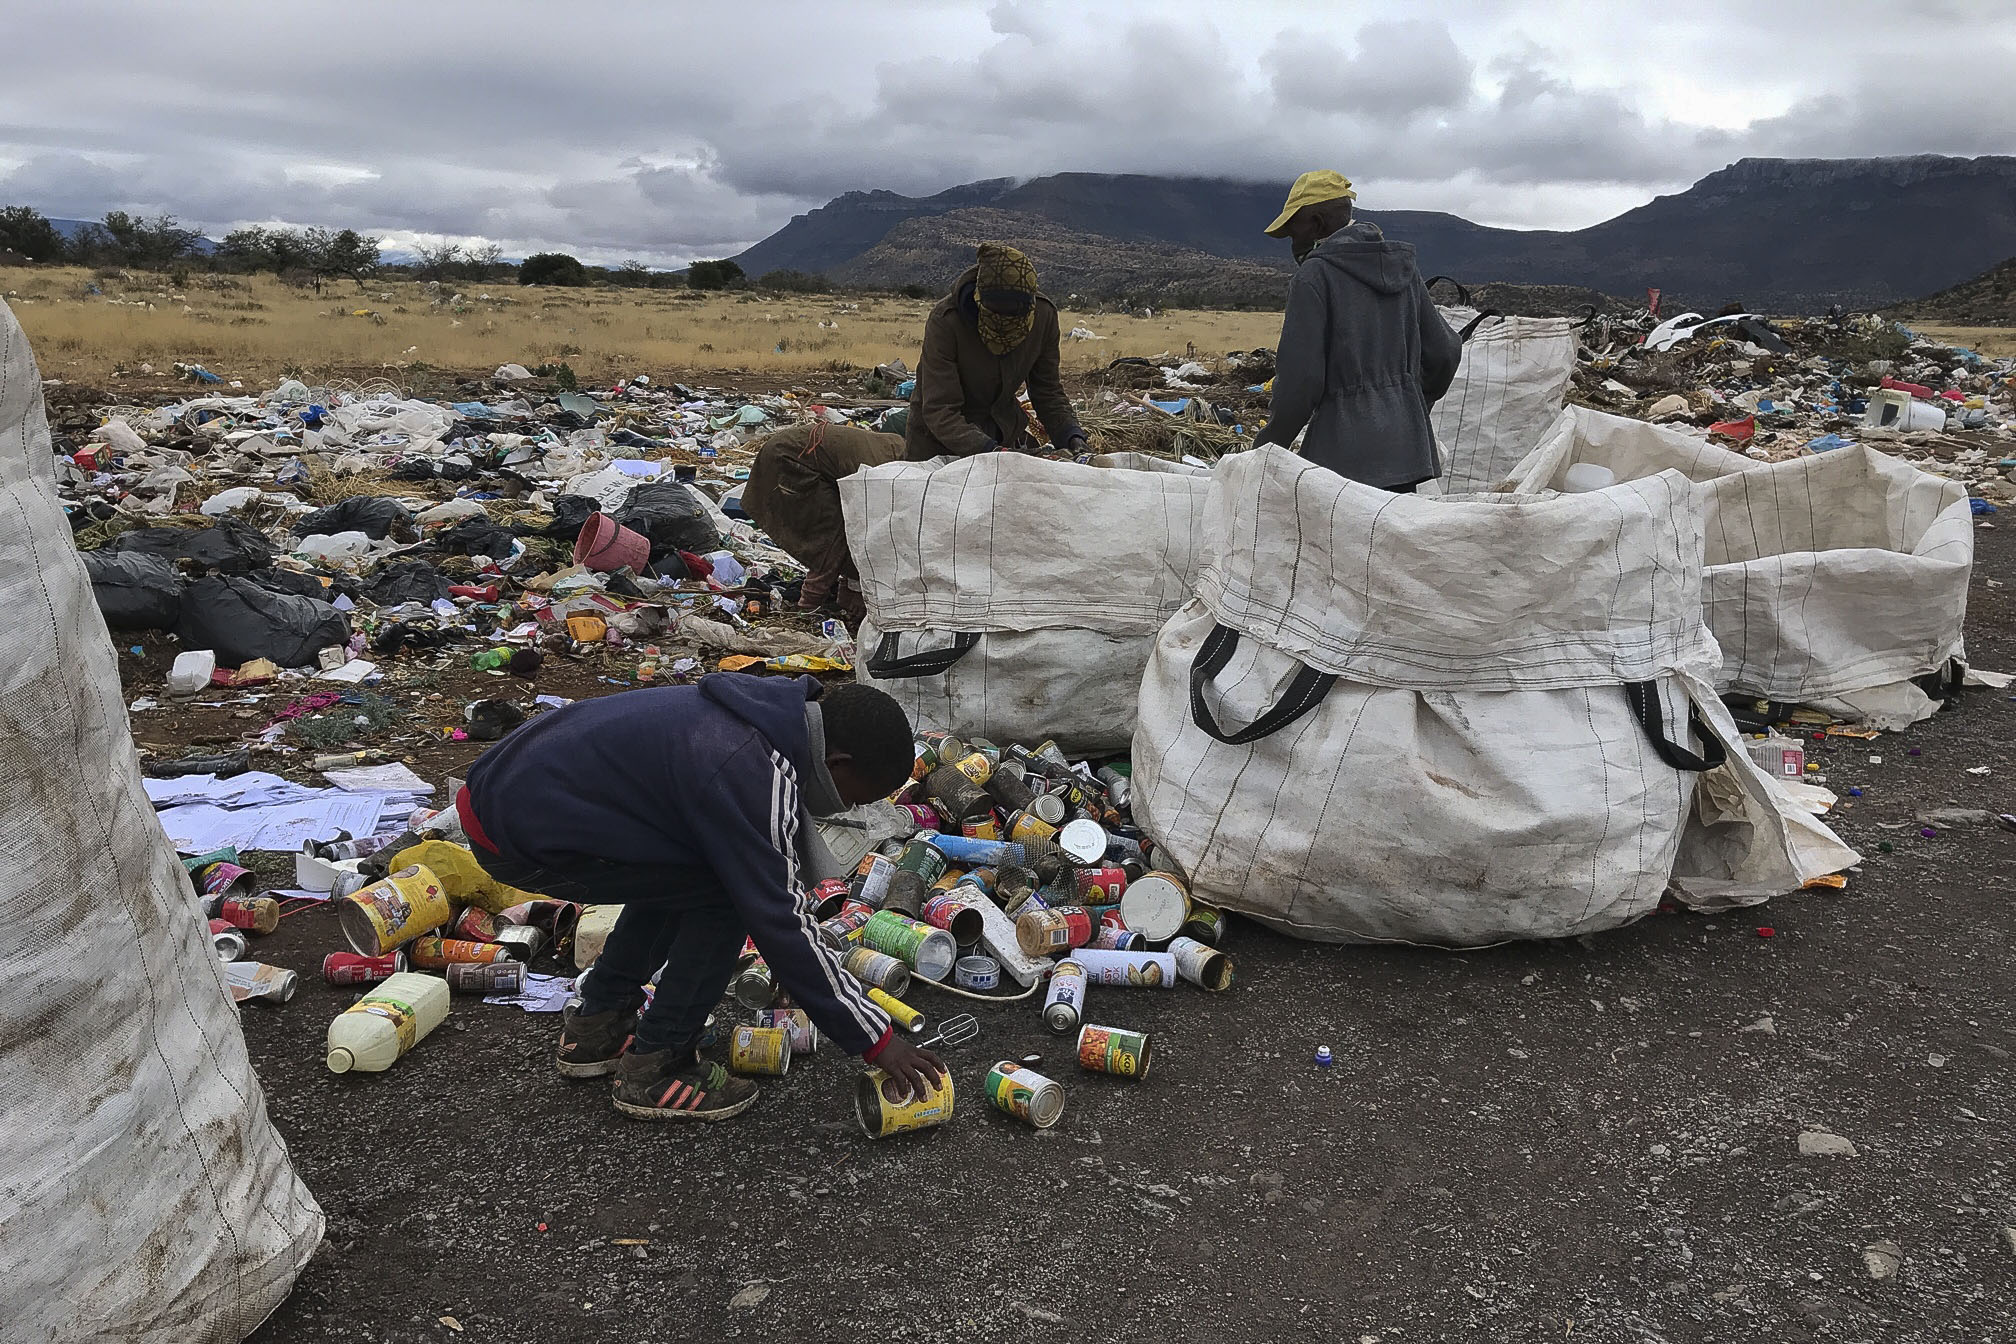 5 August 2020: Waste recyclers at work in Graaff-Reinet's landfill site.